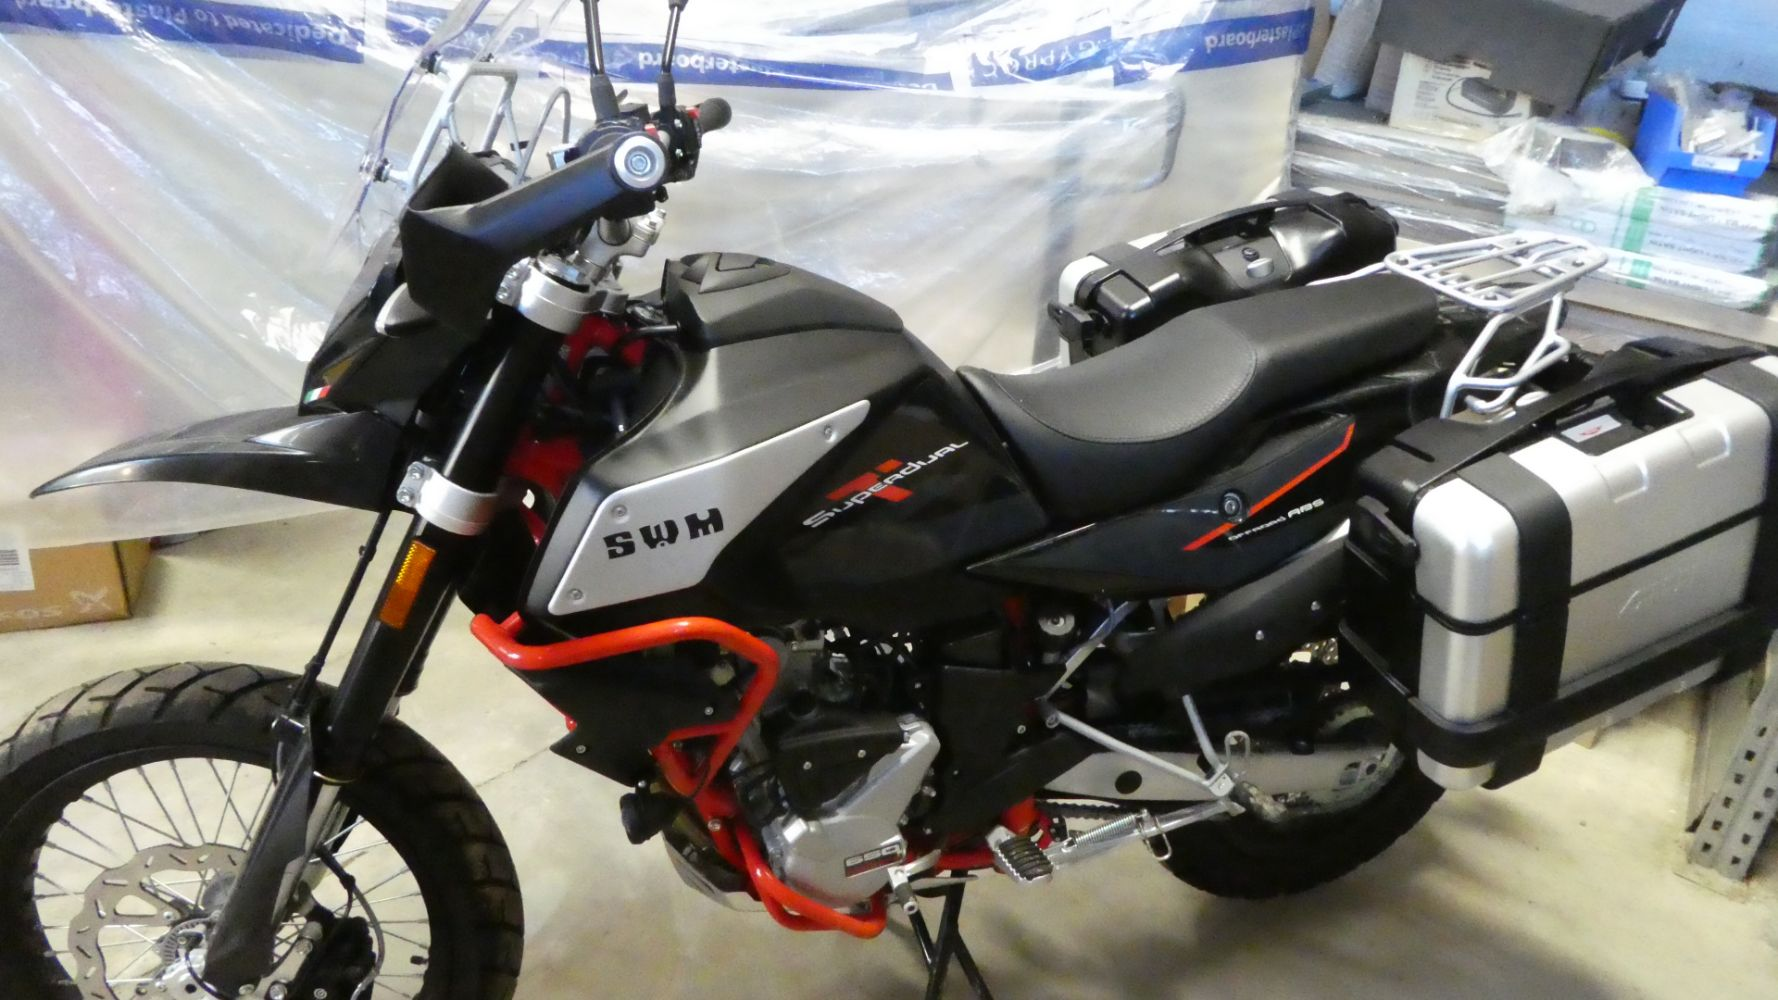 Mega Motoring Sale including New and Unregistered Motorcycles